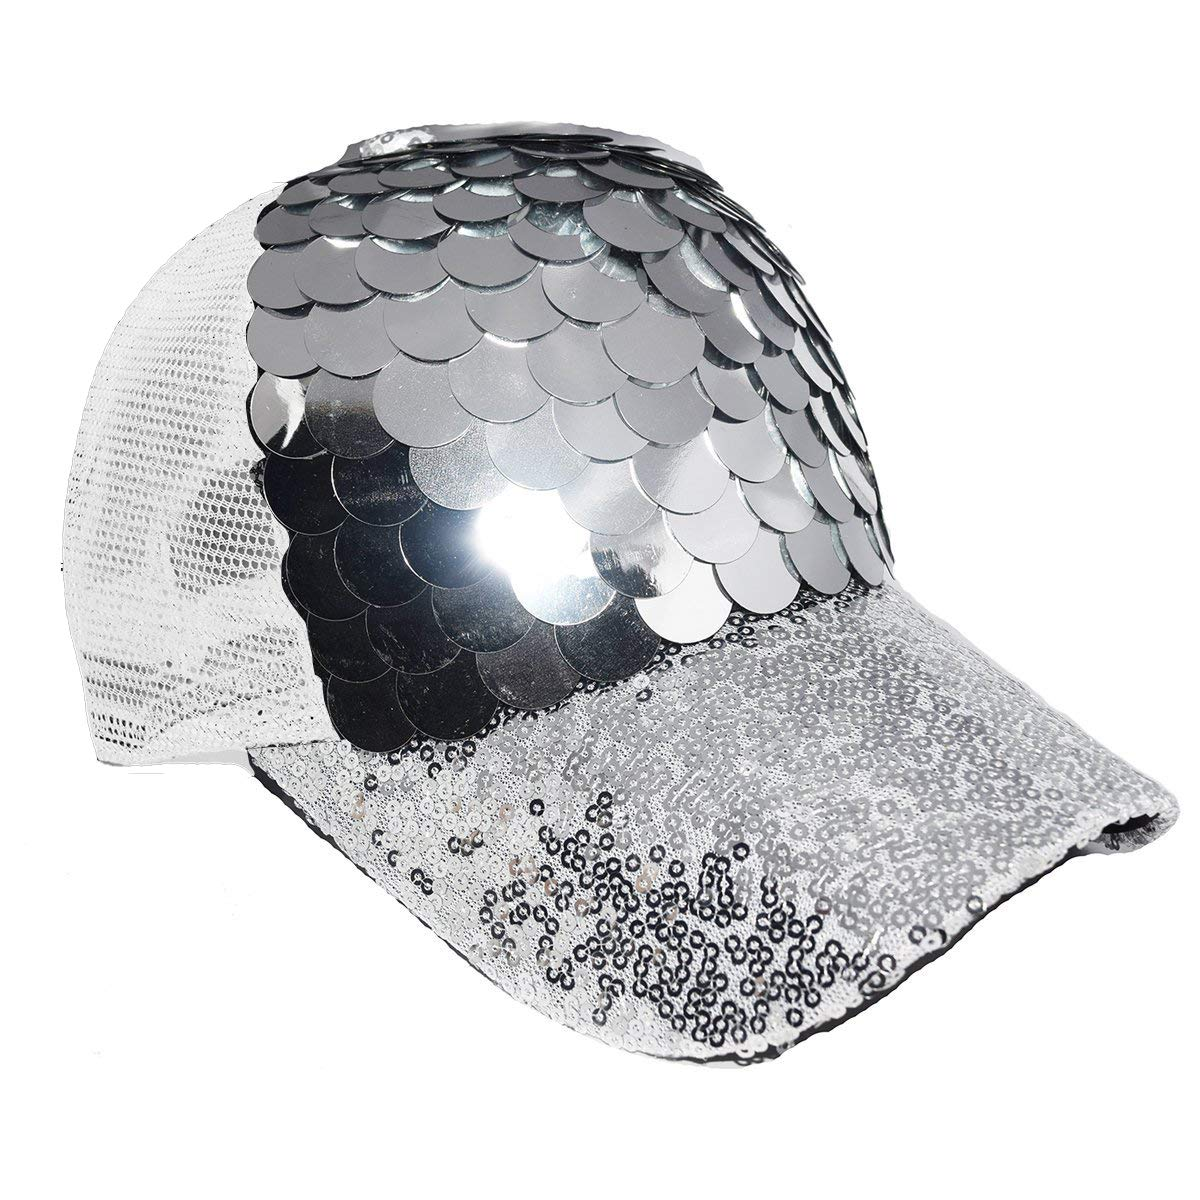 fade0265805d48 Amazon.com: Maticr Unisex Bling Mermaid Scales Sequin Trucker Hats  Adjustable Mesh Caps Baseball Party Hat (Silver): Toys & Games